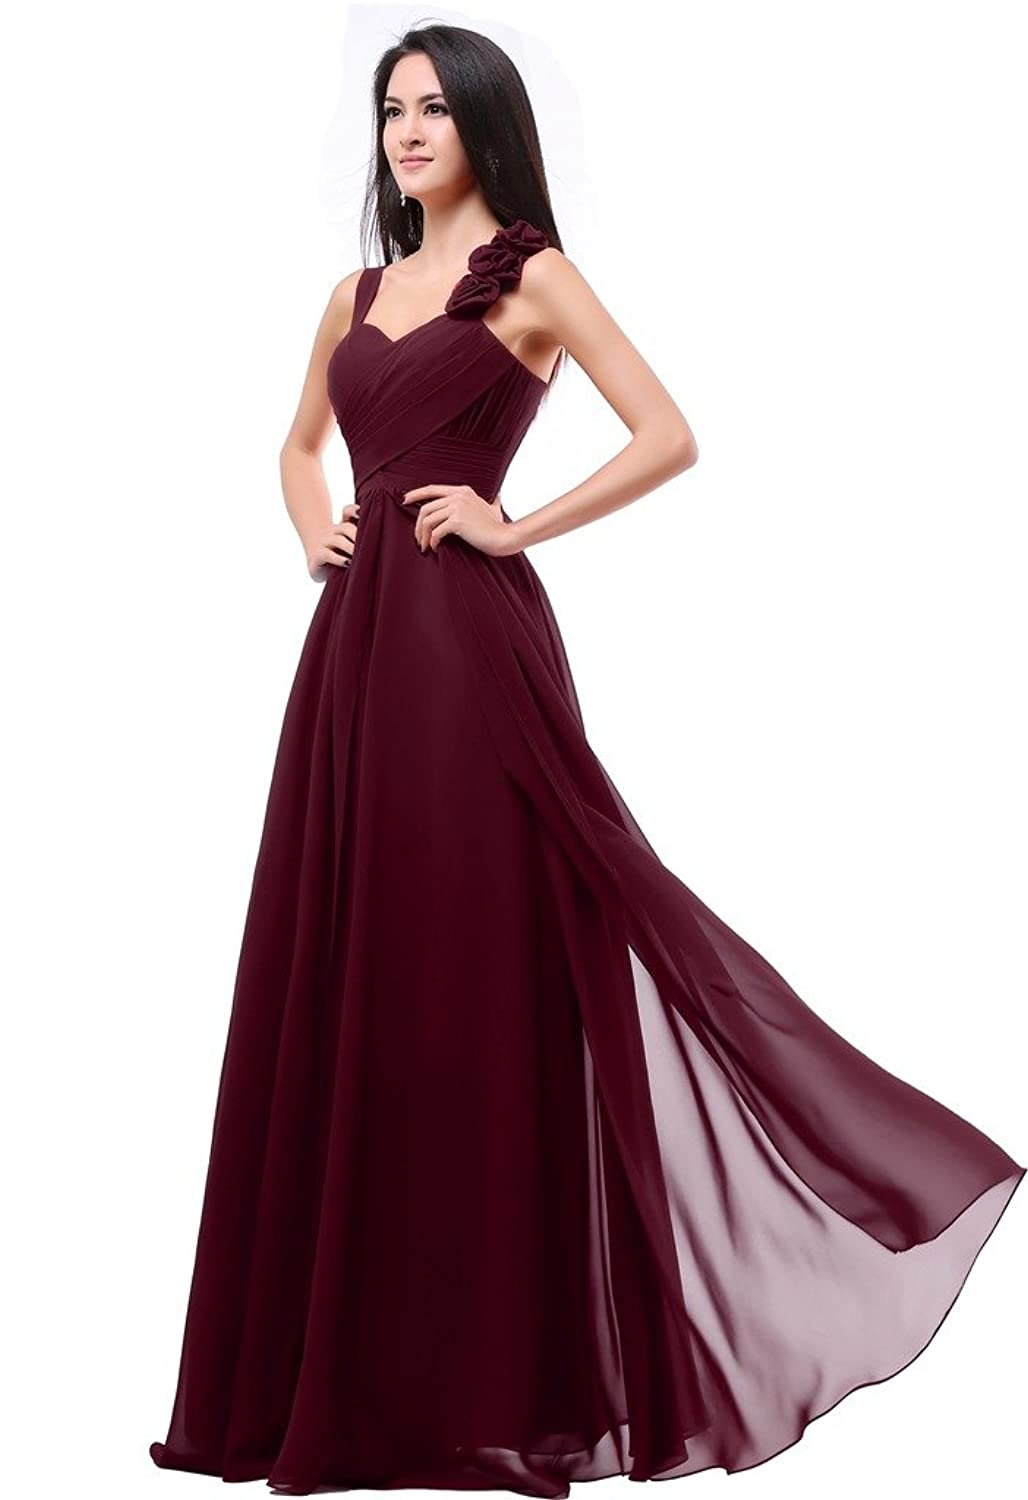 Charmangel womens formal bridesmaid dress gown at amazon womens charmangel womens formal bridesmaid dress gown at amazon womens clothing store ombrellifo Image collections